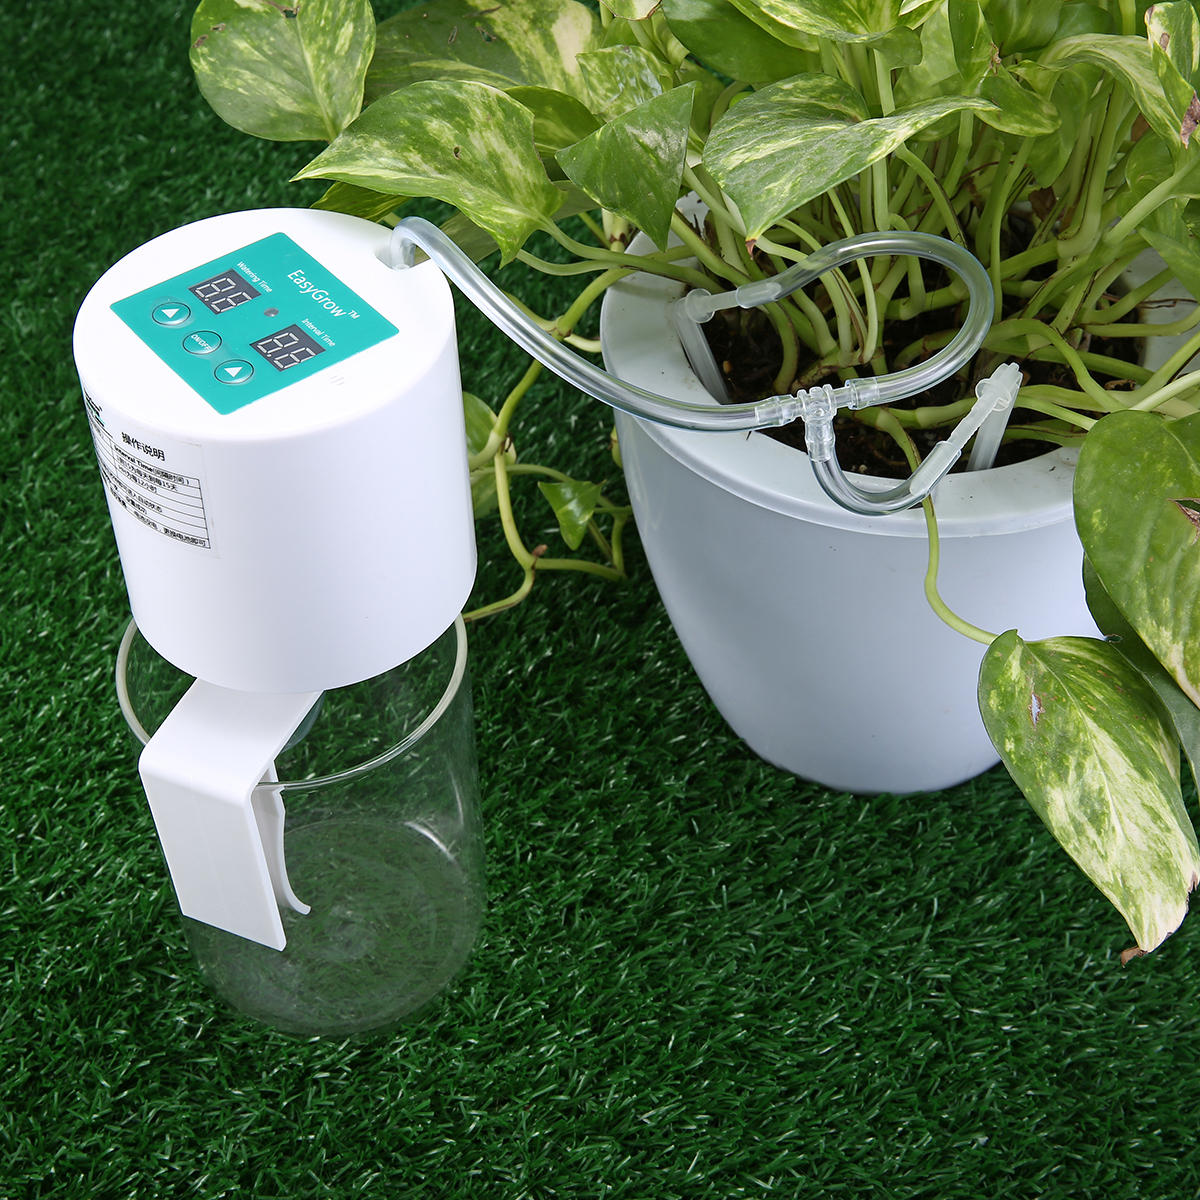 Garden Drip Irrigation Kit Auto Self Watering System Indoor Vacation Bonsai Plant Watering Timer